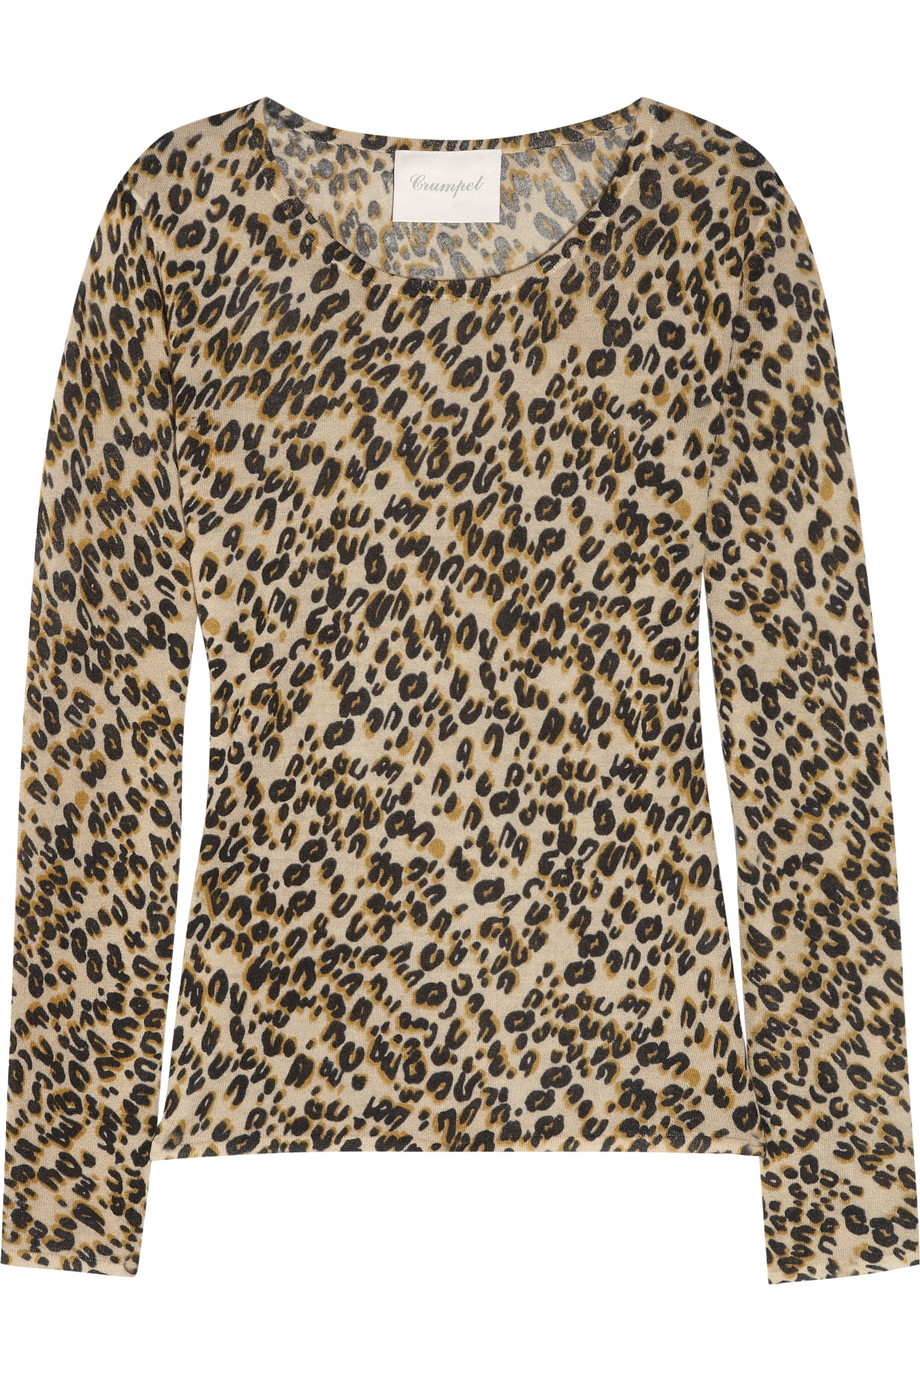 Shop for leopard print clothing online at Target. Free shipping on purchases over $35 and save 5% every day with your Target REDcard.